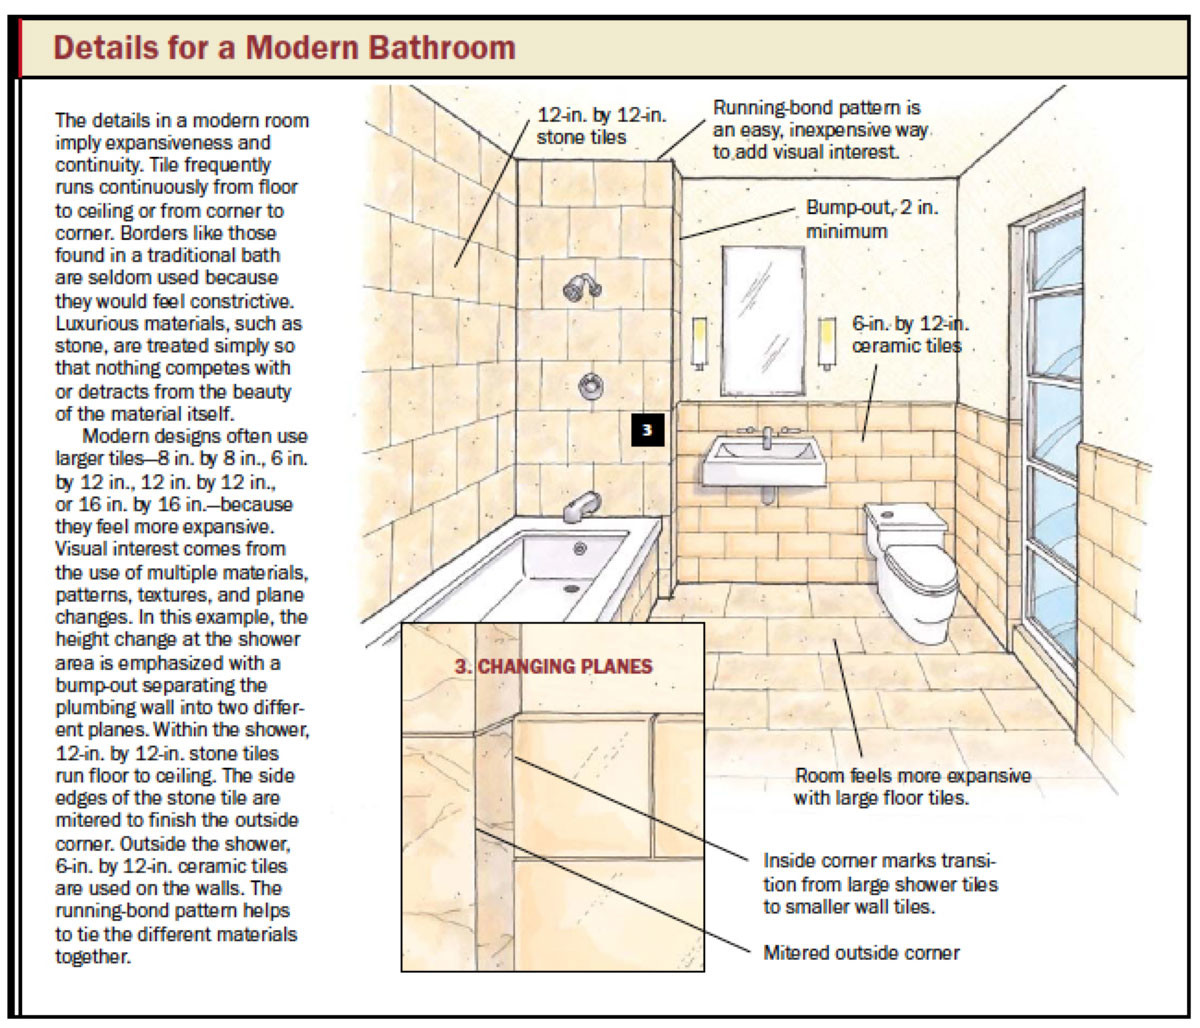 Bathroom and Kitchen Design: How to Choose Tile and Plan Tile ...